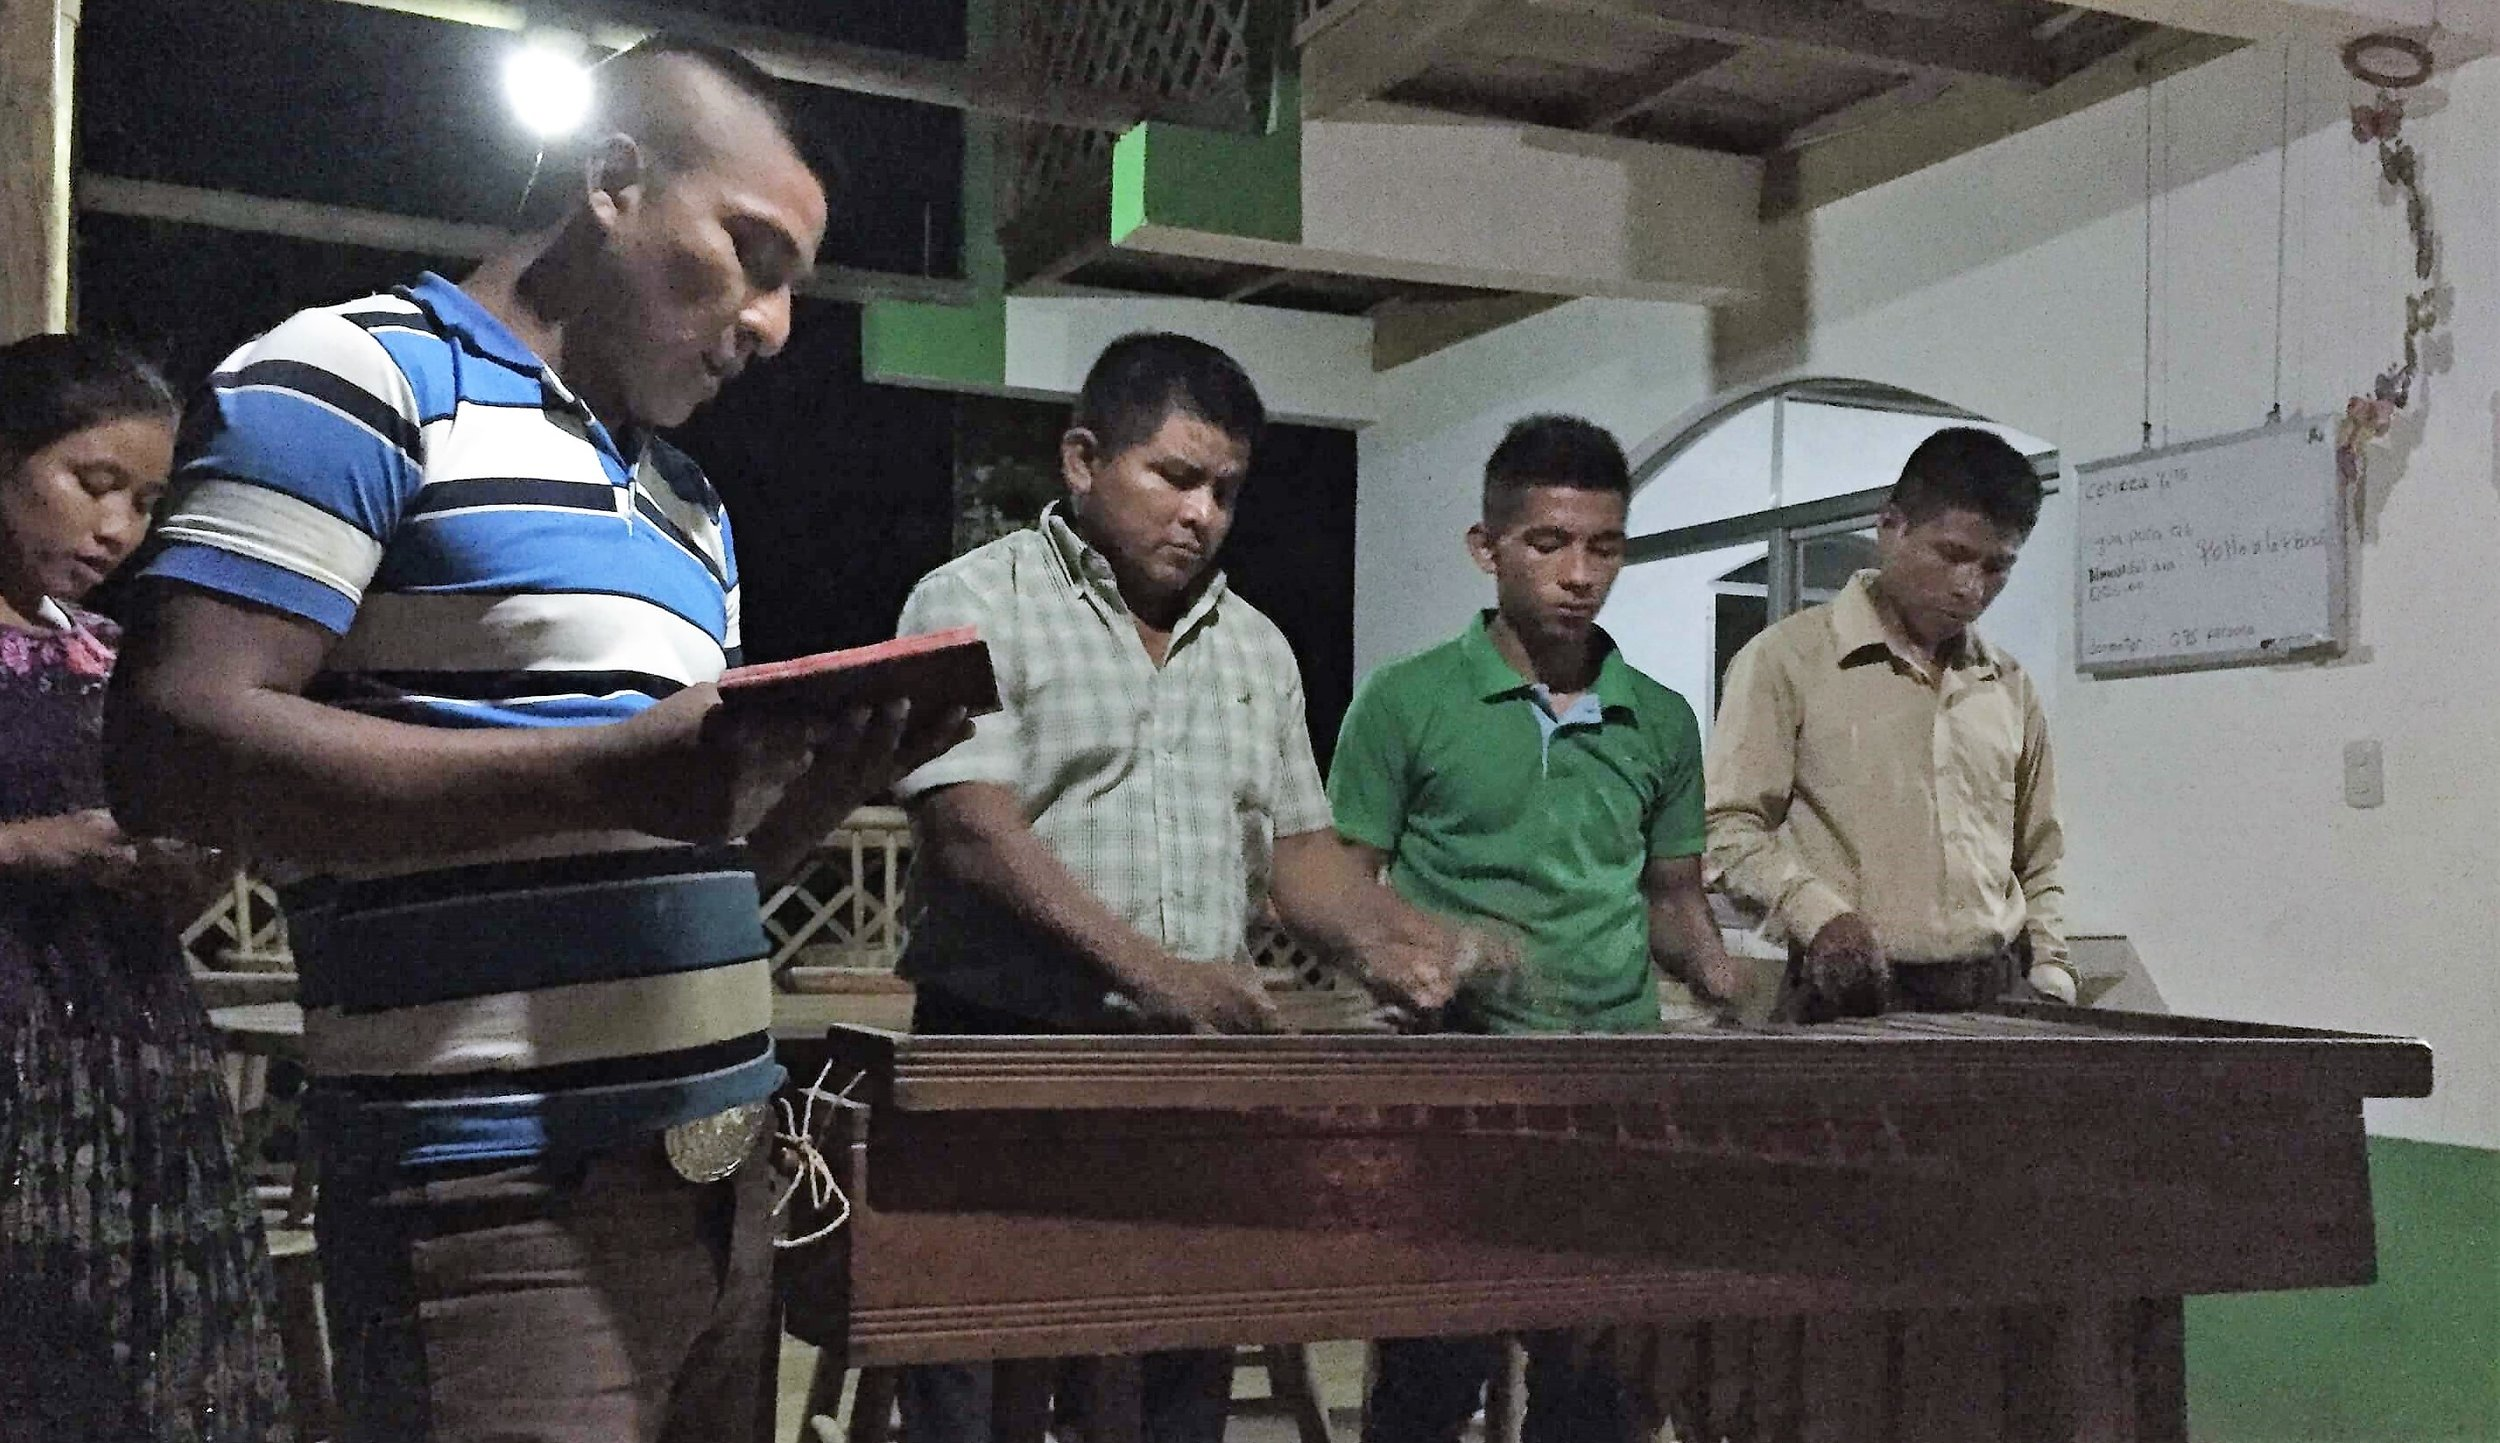 The Kekchi team played the marimba on our first stop near El Estor, Guatemala.